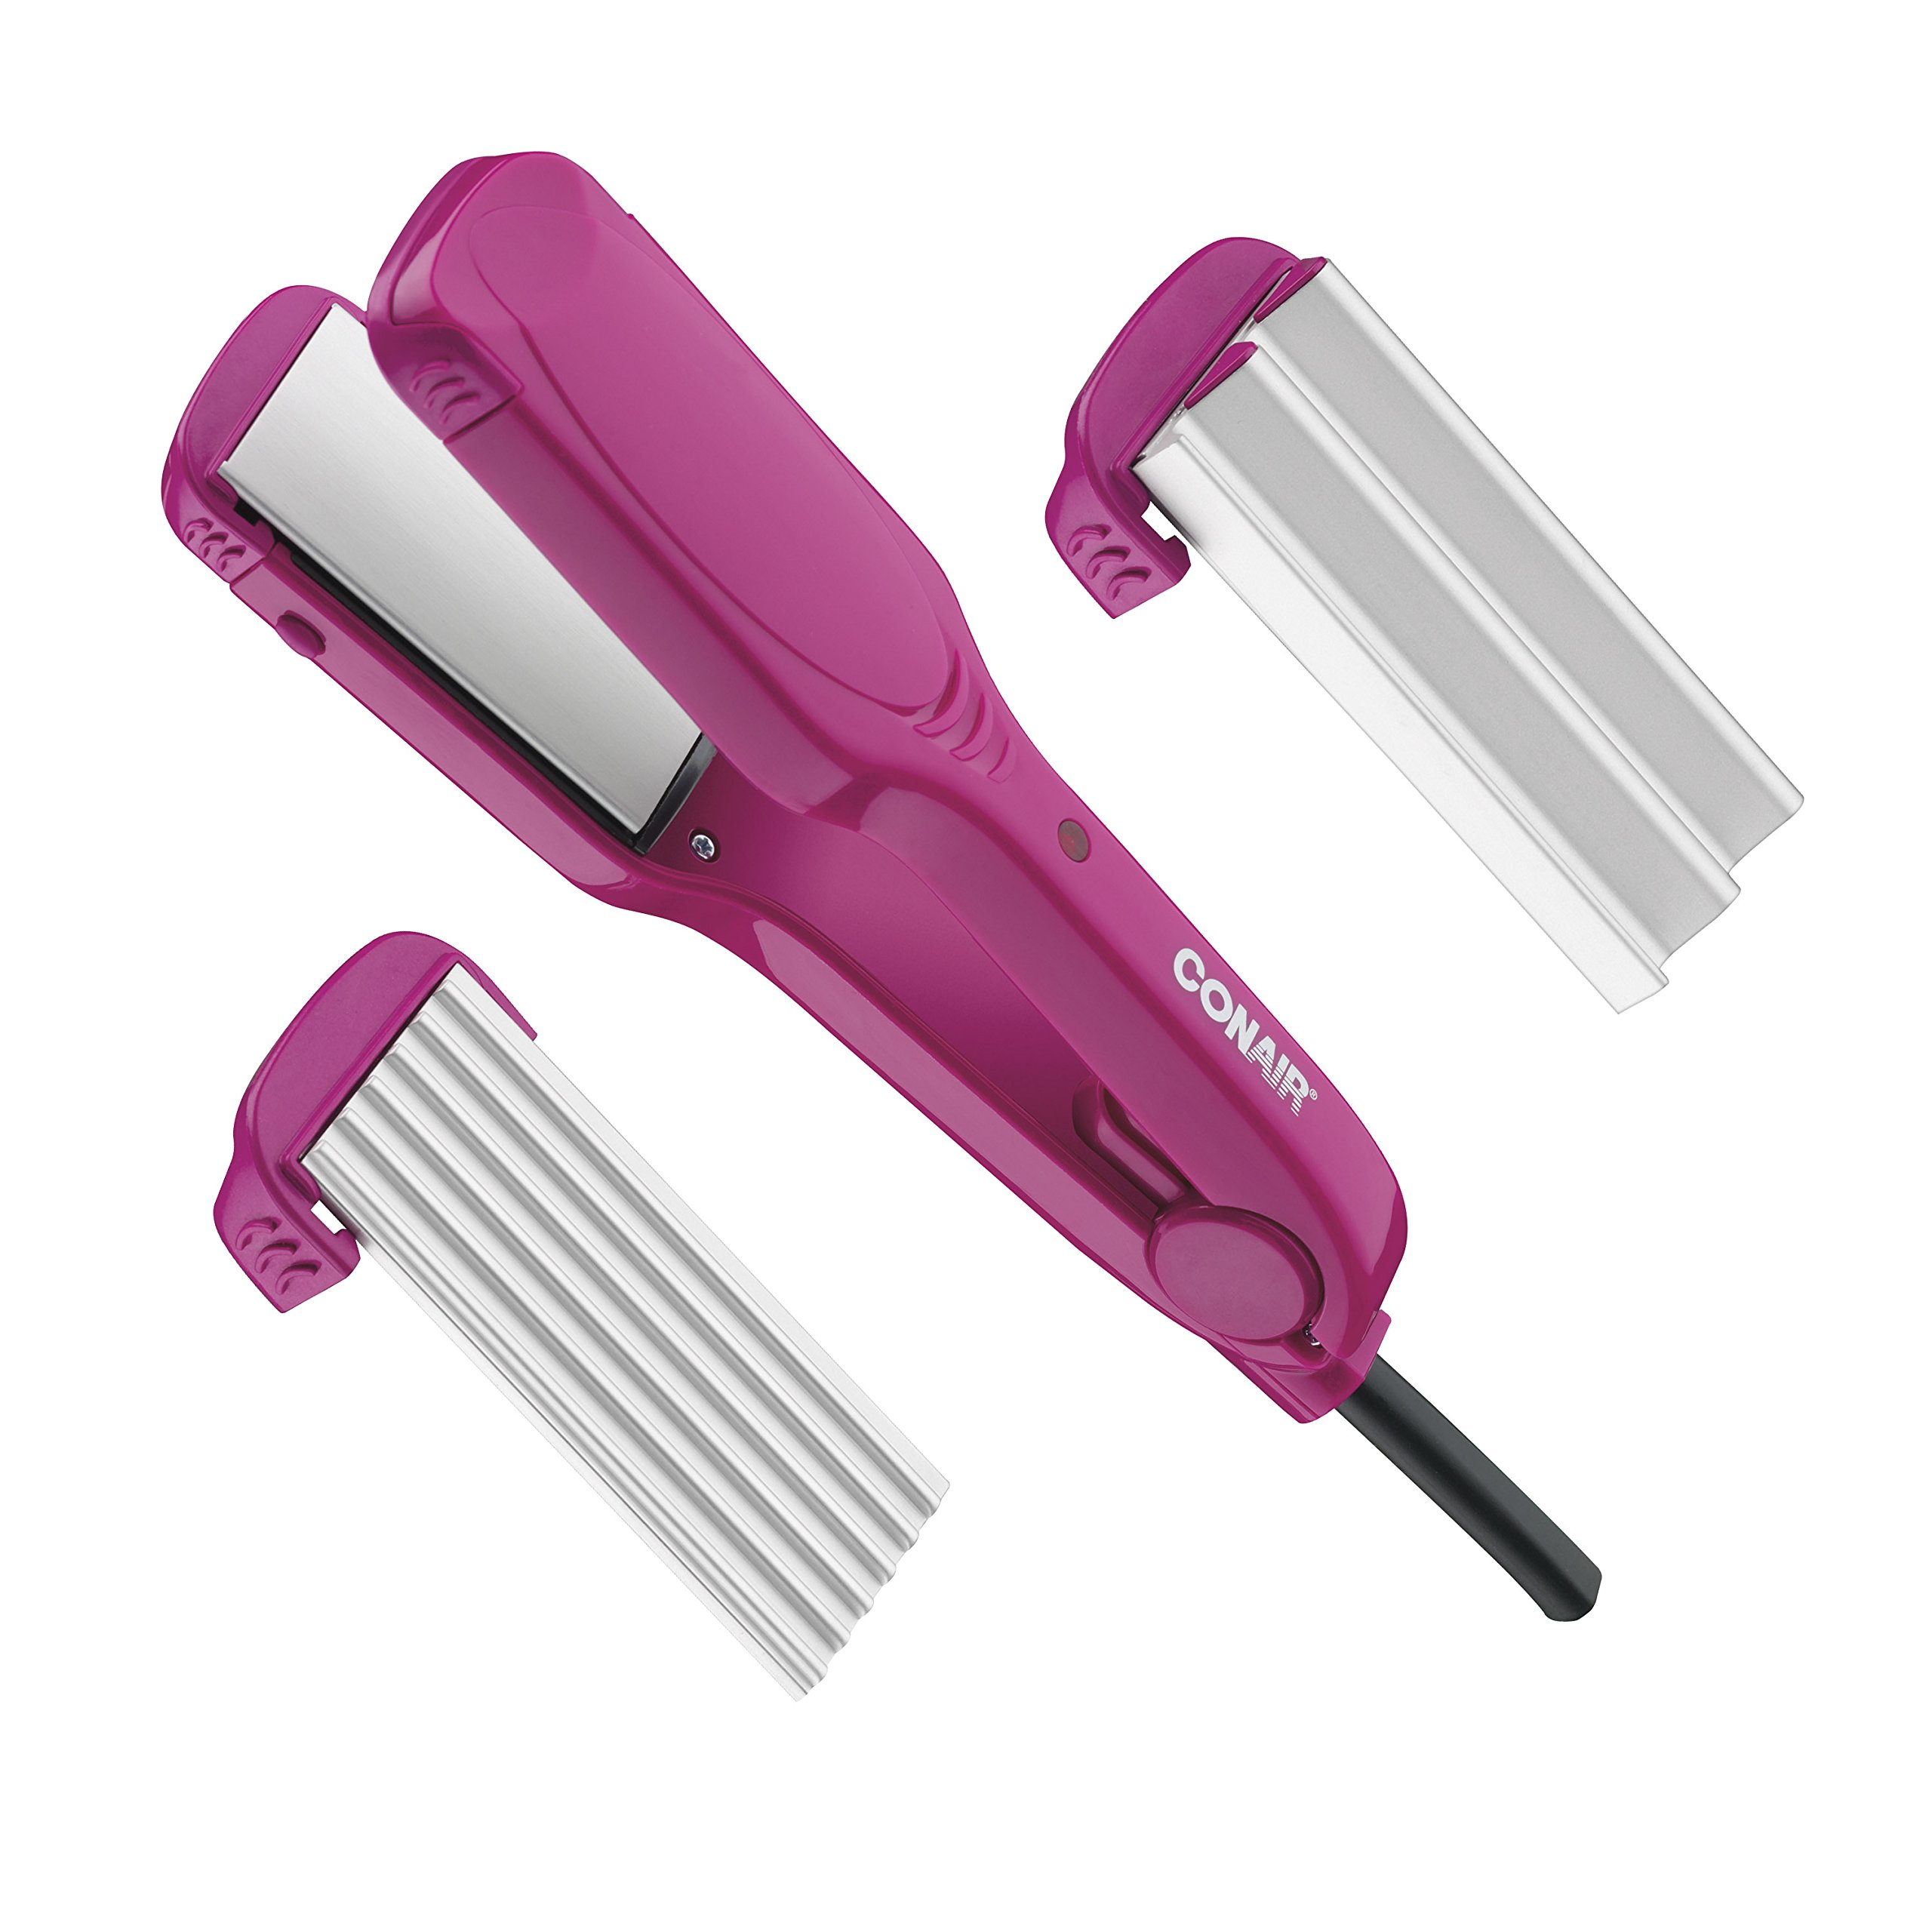 Conair 3-in-1 Straight Waves Specialty Styler by Conair